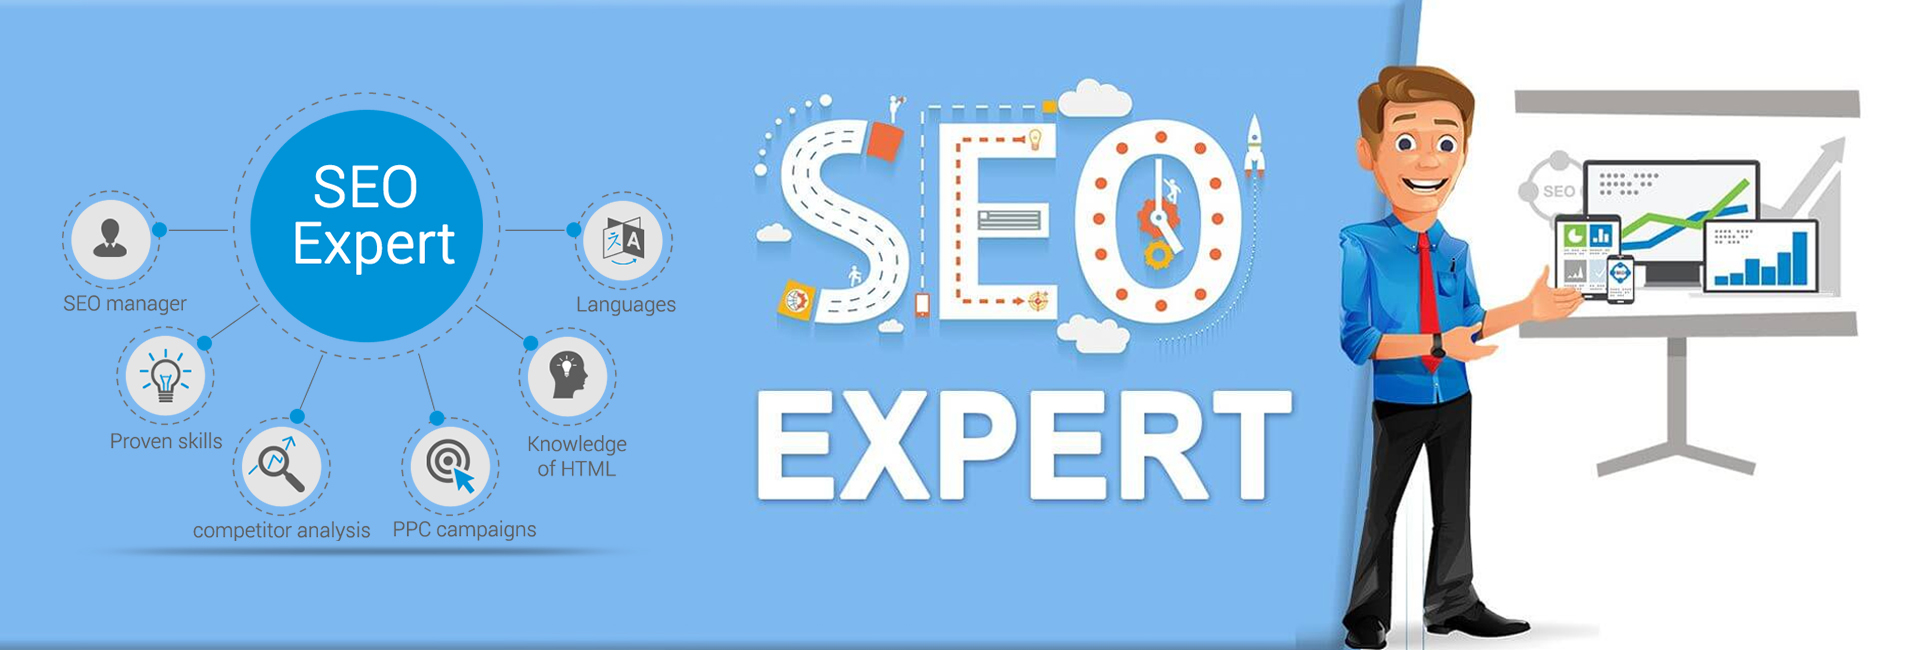 Hiring A Search Engine Optimisation (SEO) Service: RED FLAGS